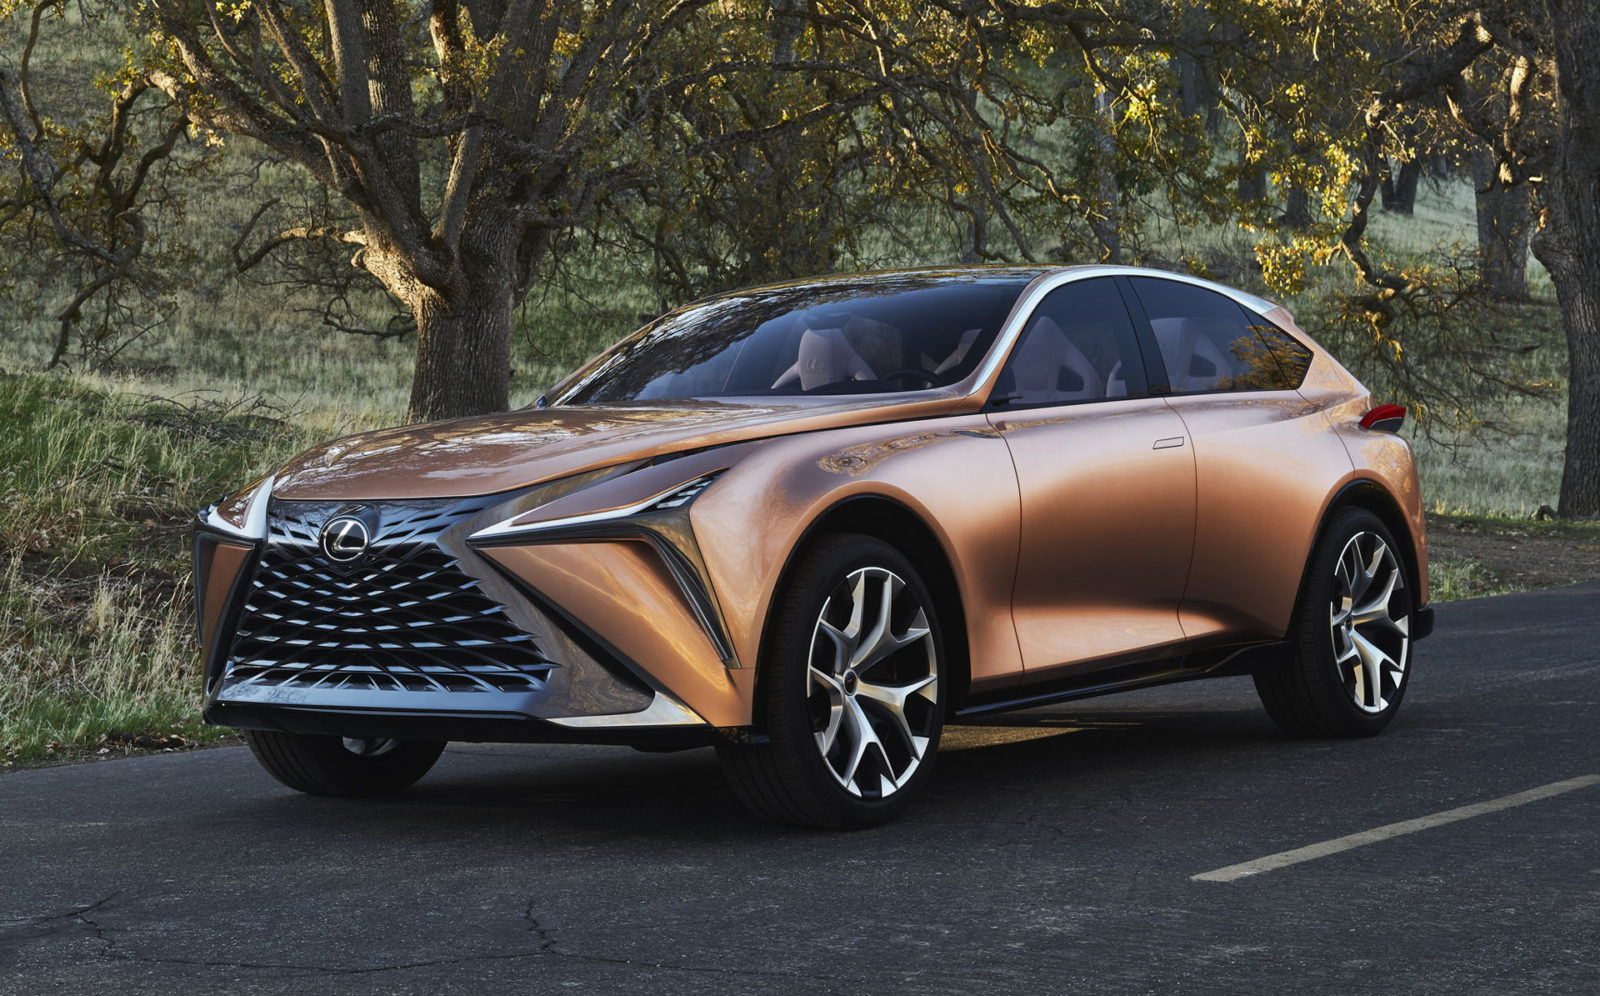 new-3-row-lexus-and-toyota-crossovers-to-be-built-in-indiana,-feature-hands-free-driver-assist